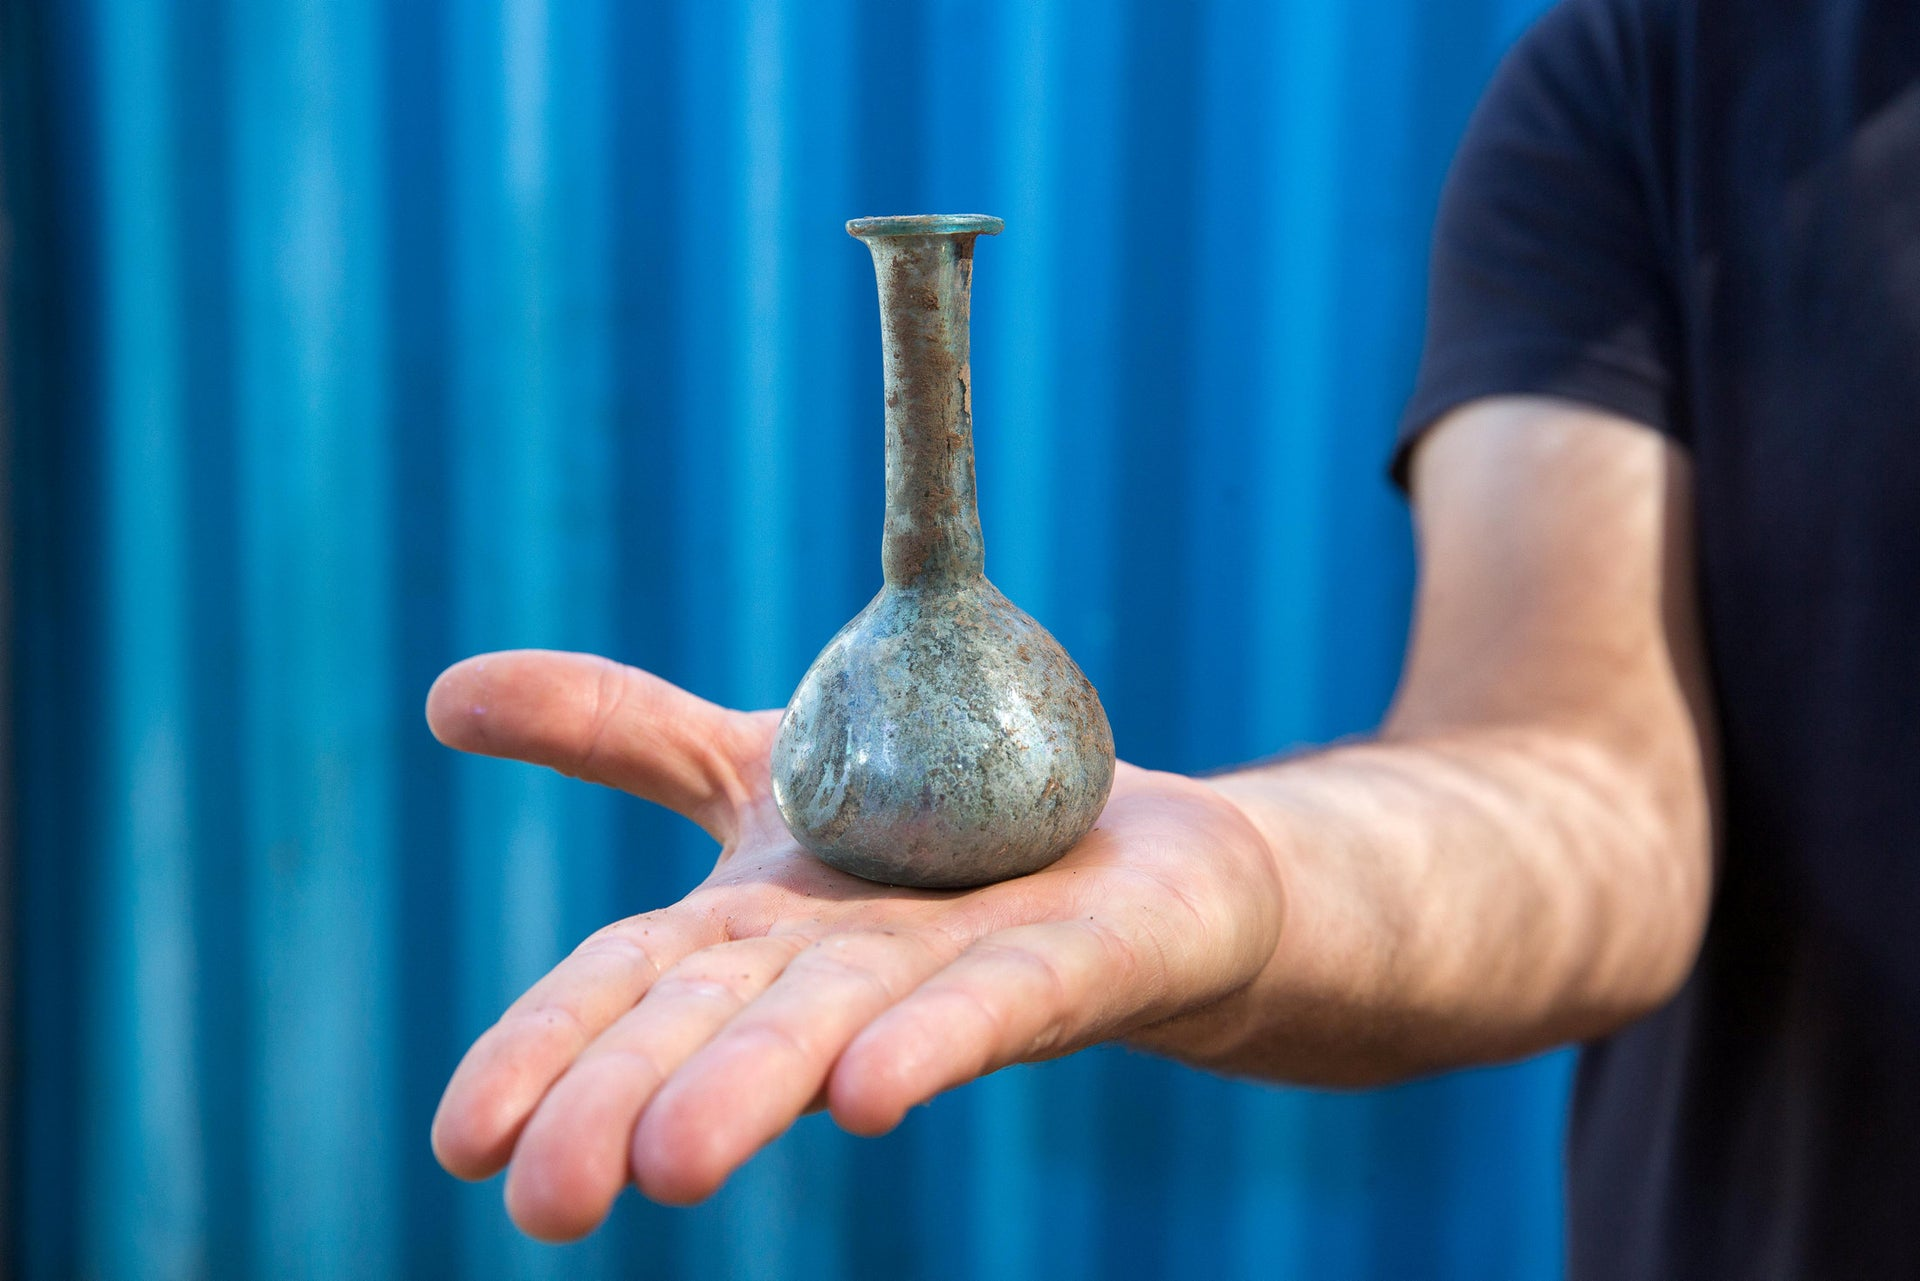 Glass vial from later Roman era found in Motza